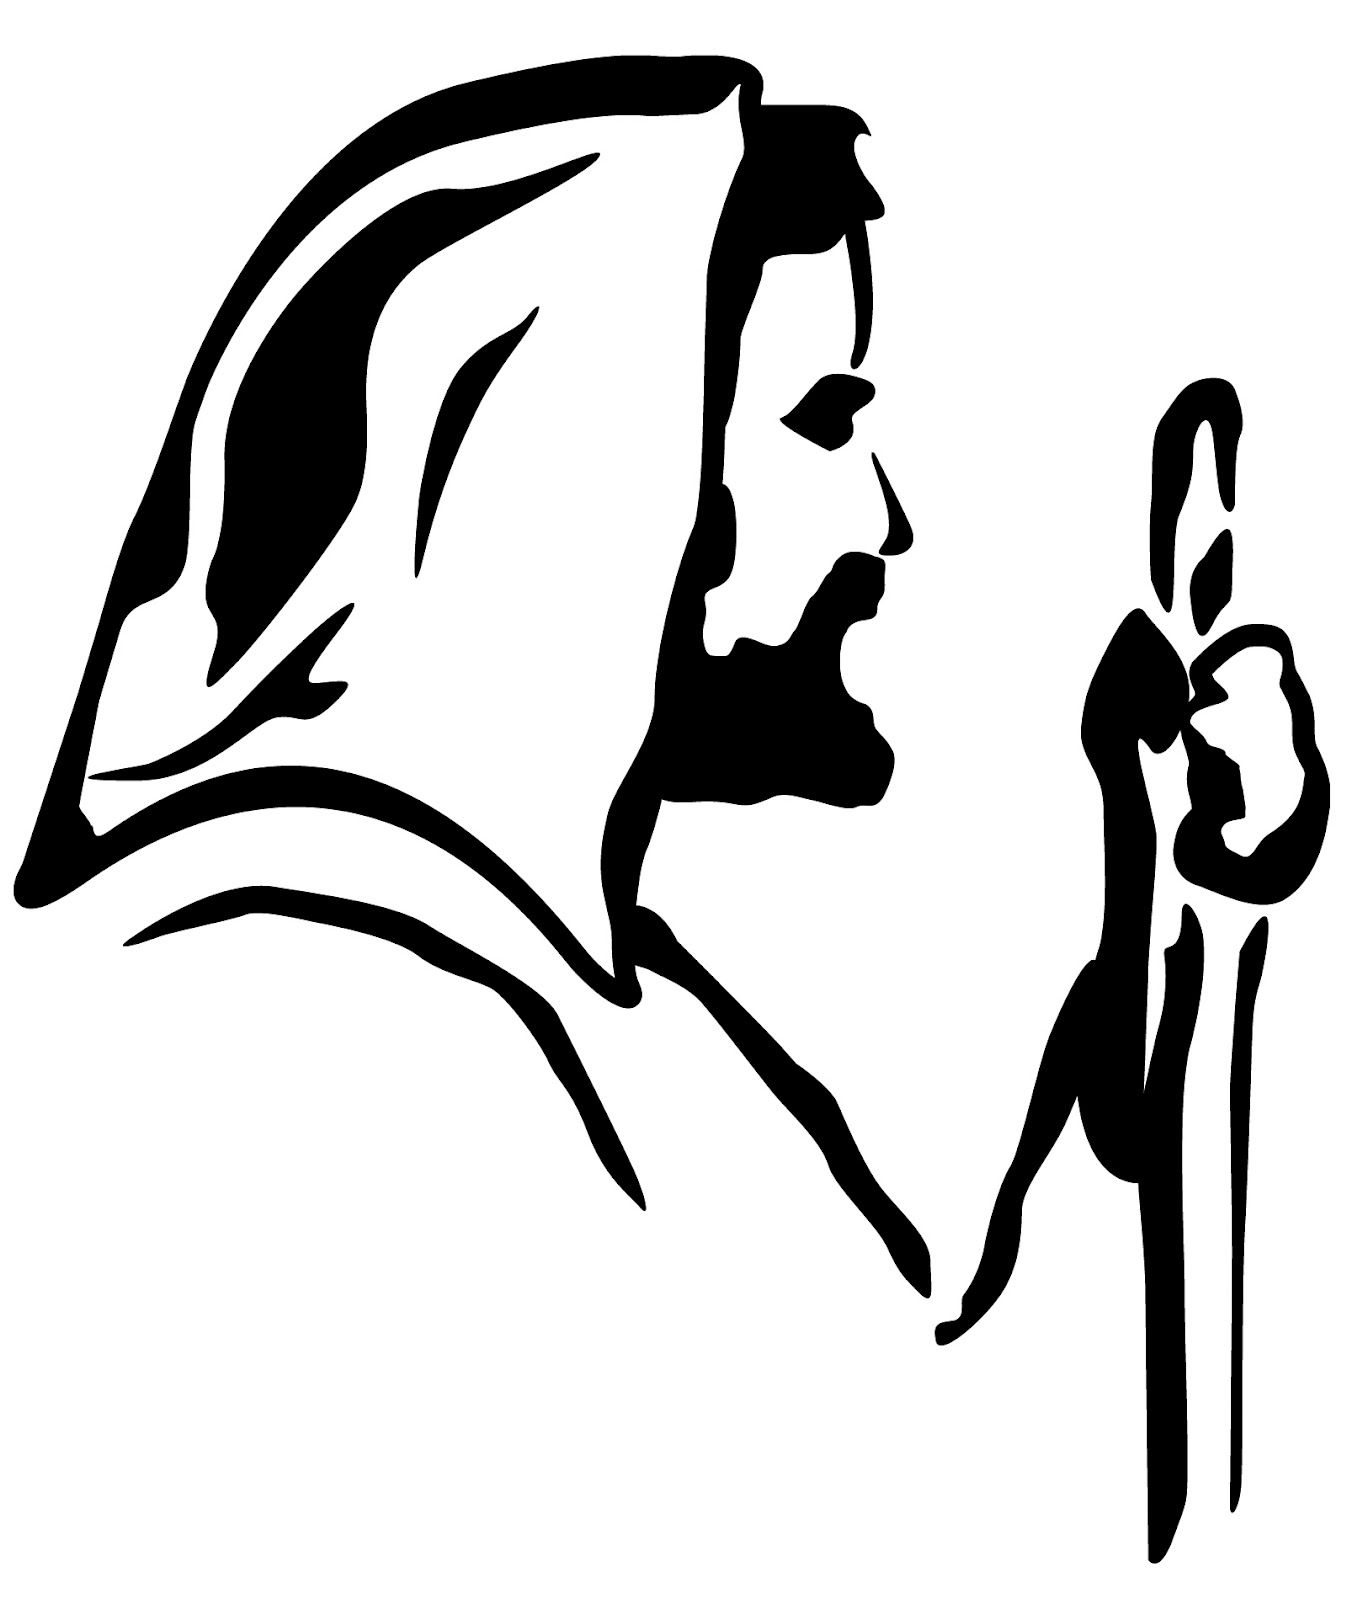 Jesus crafty mccrafter drawings. Christian clipart drawing